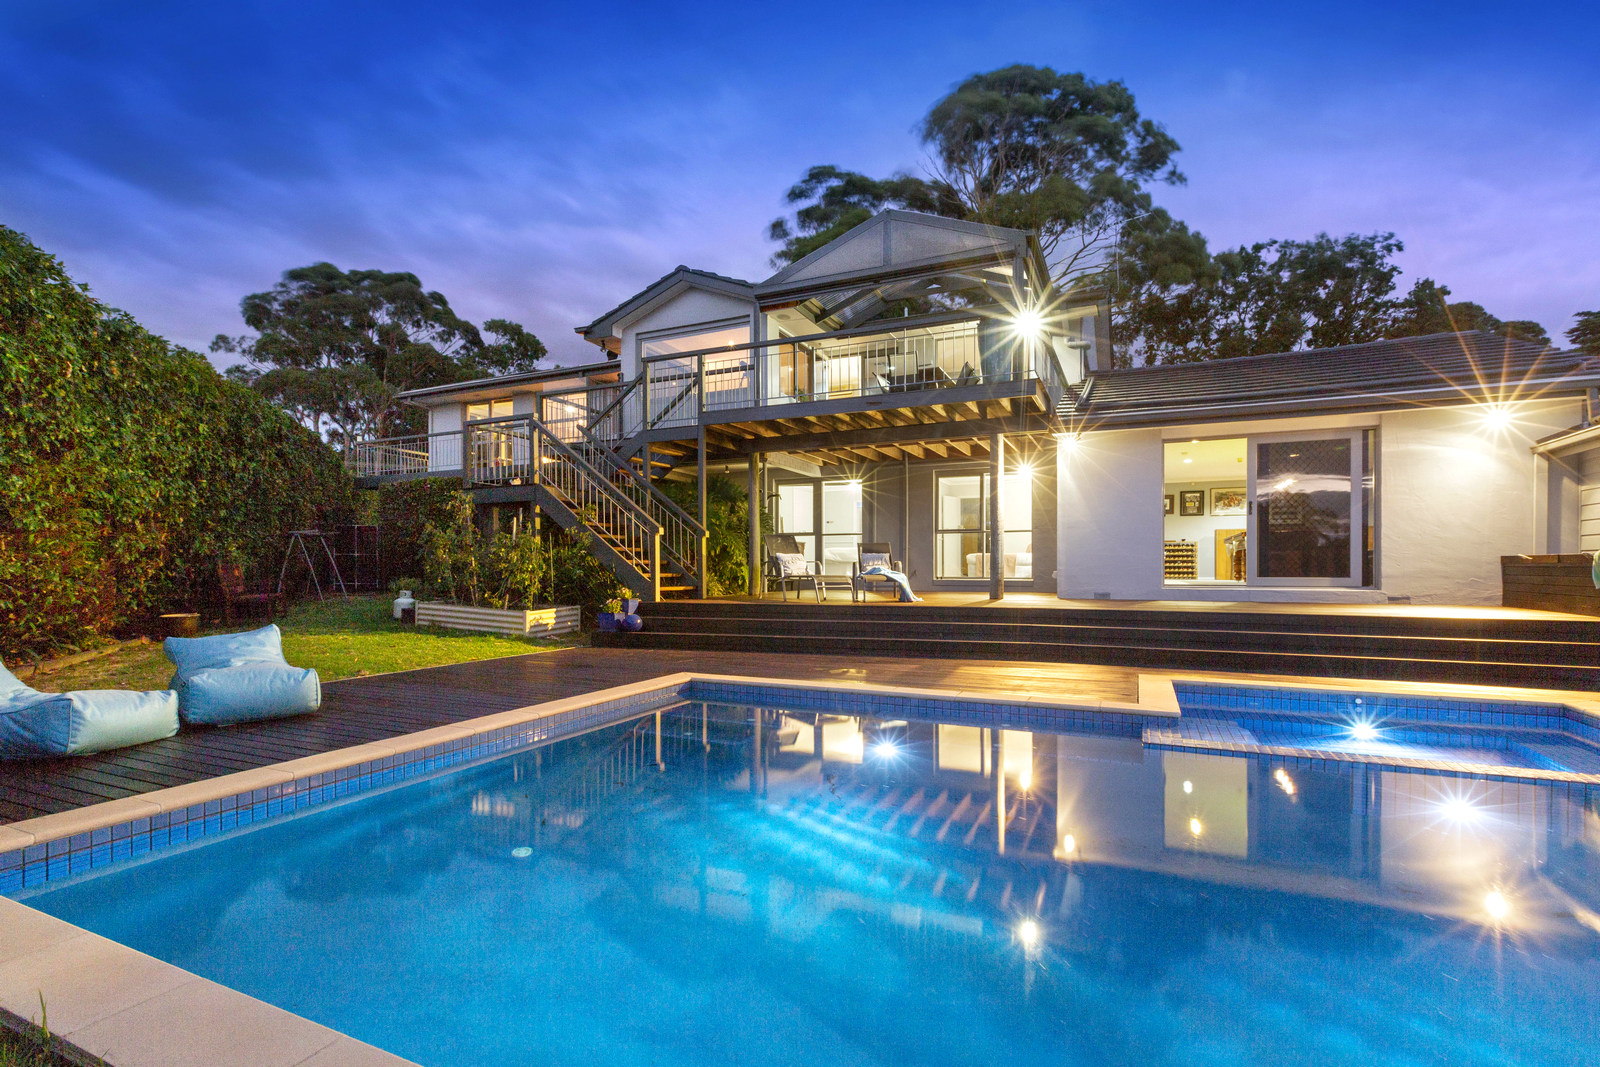 7 Barton Drive, Mt Eliza SOLD MARCH 2019 (QUOTING PRICE $1,825,000)